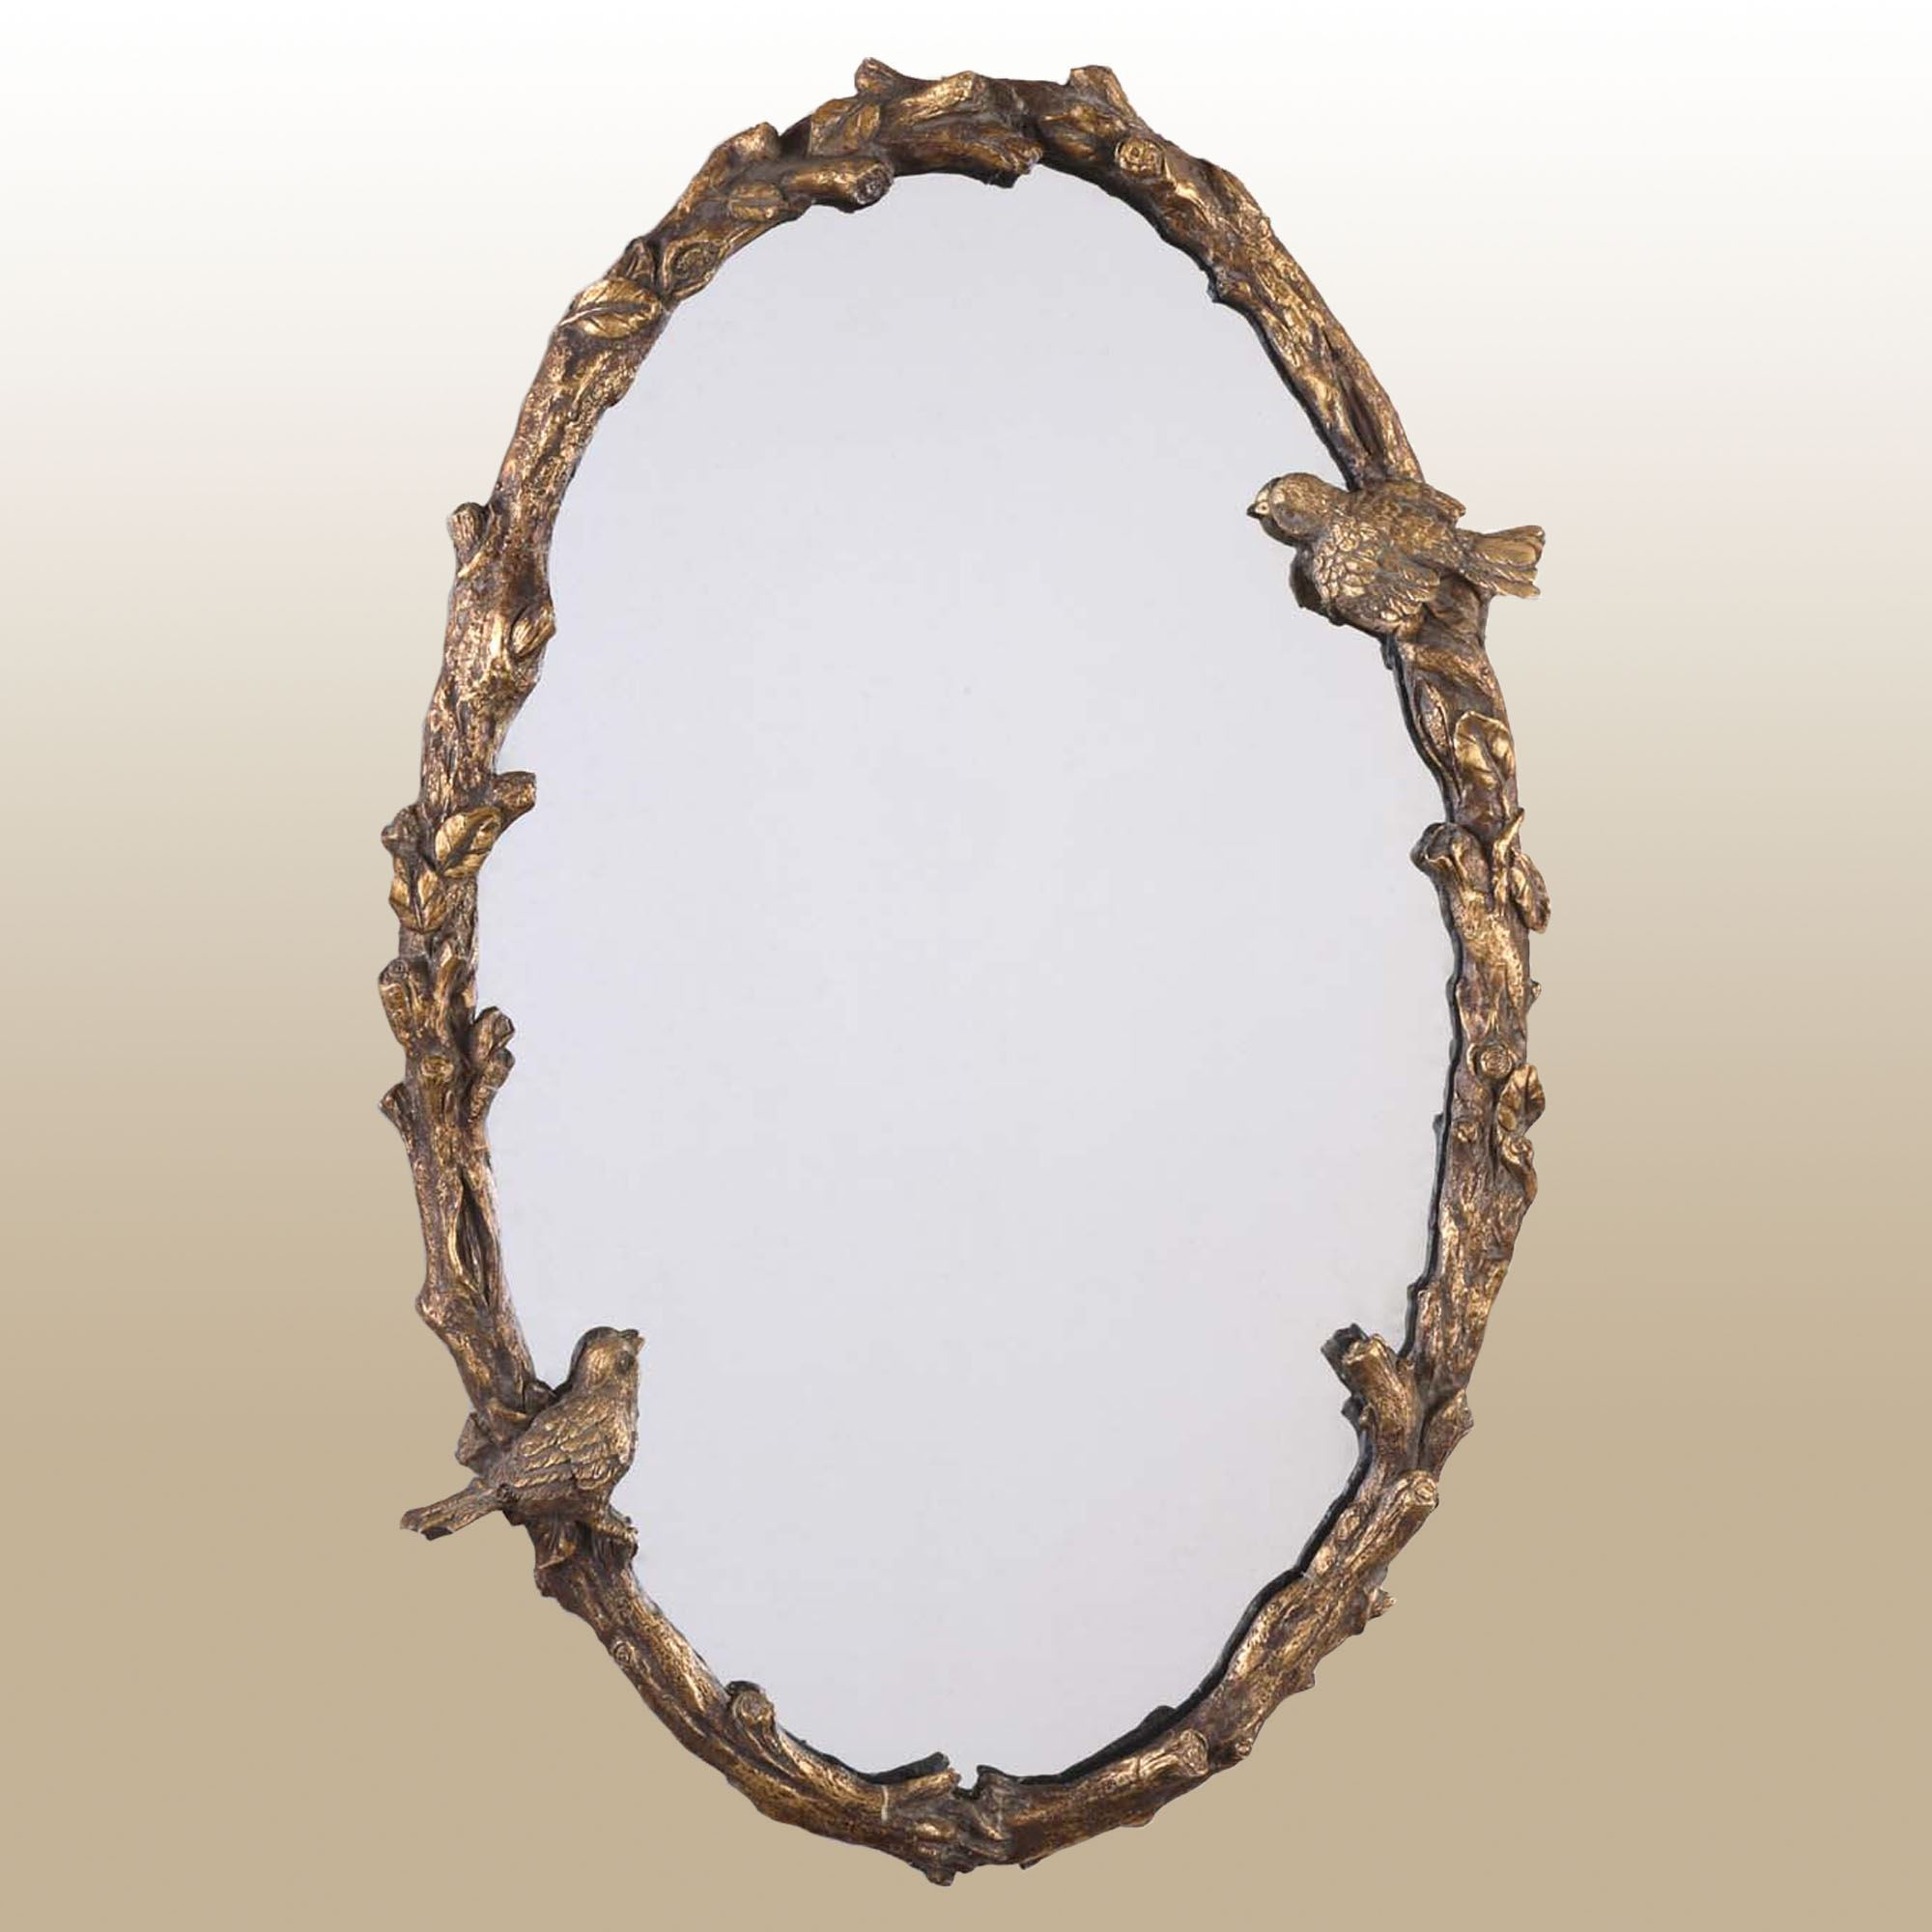 Elegant Birds Oval Wall Mirror Throughout Oval Wood Wall Mirrors (View 10 of 30)